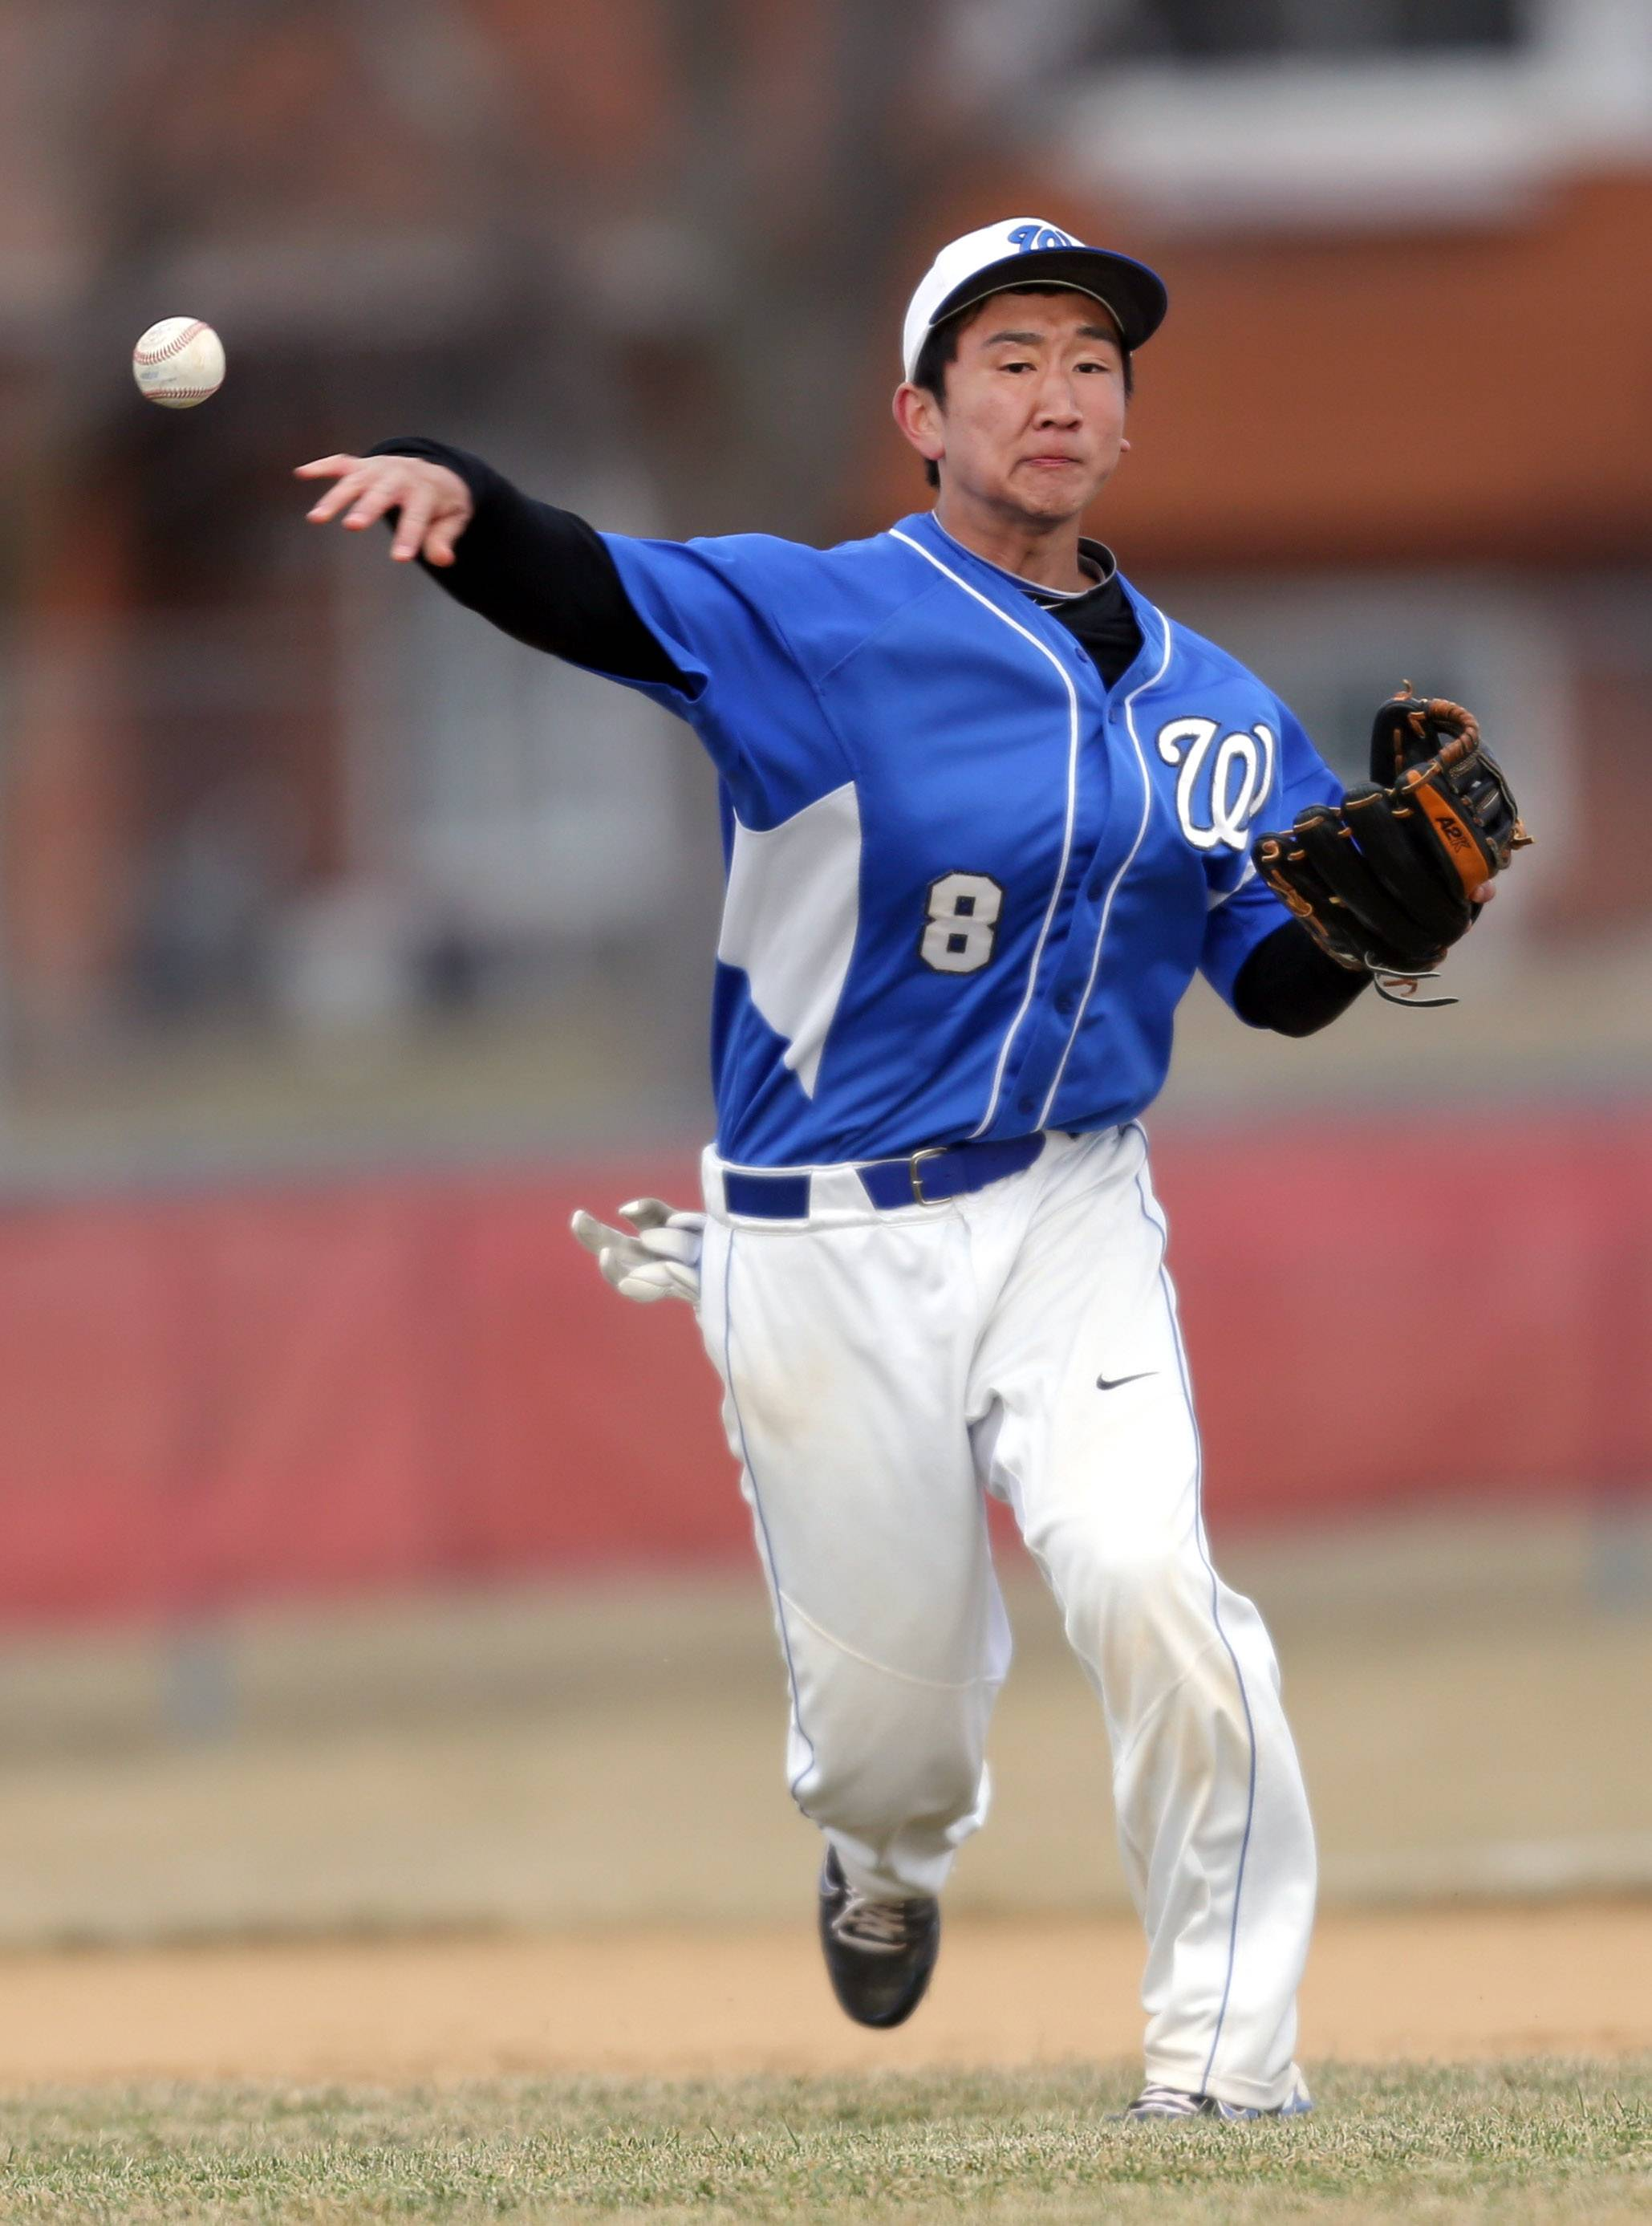 Wheeling's Josh Kim throws to first base against host Mundelein on Wednesday.